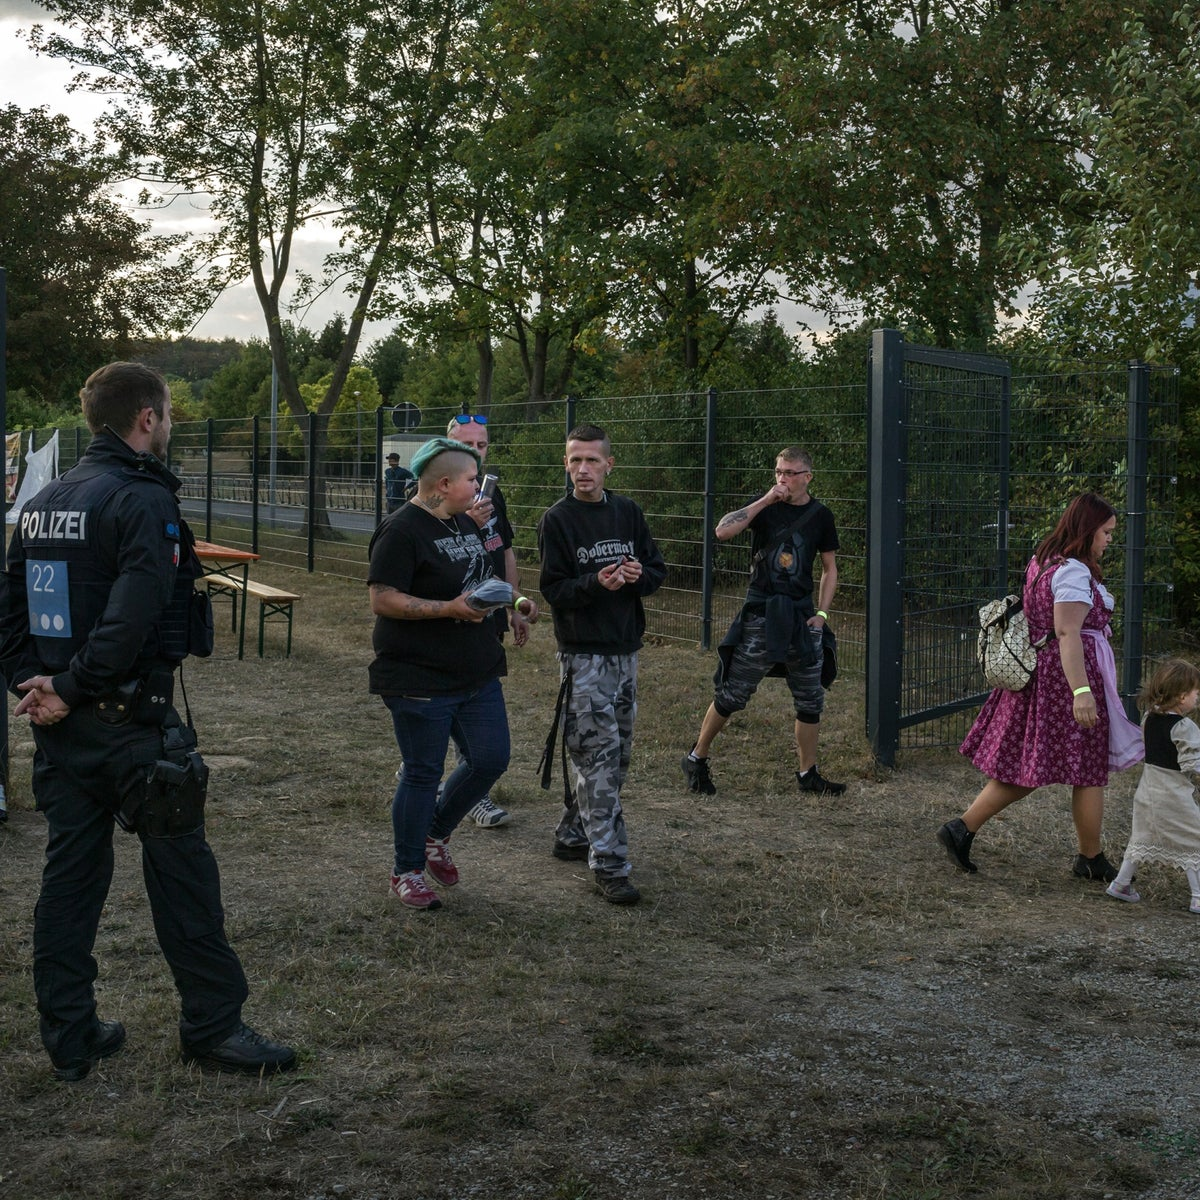 Watched by a police officer, participants leave the eighth annual Eichsfeld Day, organized by the National Democratic Party, a political party of avowed neo-Nazis, in Leinefelde, Germany, Sept. 1, 2018. German right-wing extremists are holding open-air events, mostly rock concerts, in small towns throughout the country as a way to spread their message, recruit supporters and show their power. (Mauricio Lima/The New York Times) פסטיבל NDP בגרמניה . מגיעים עם ילדים